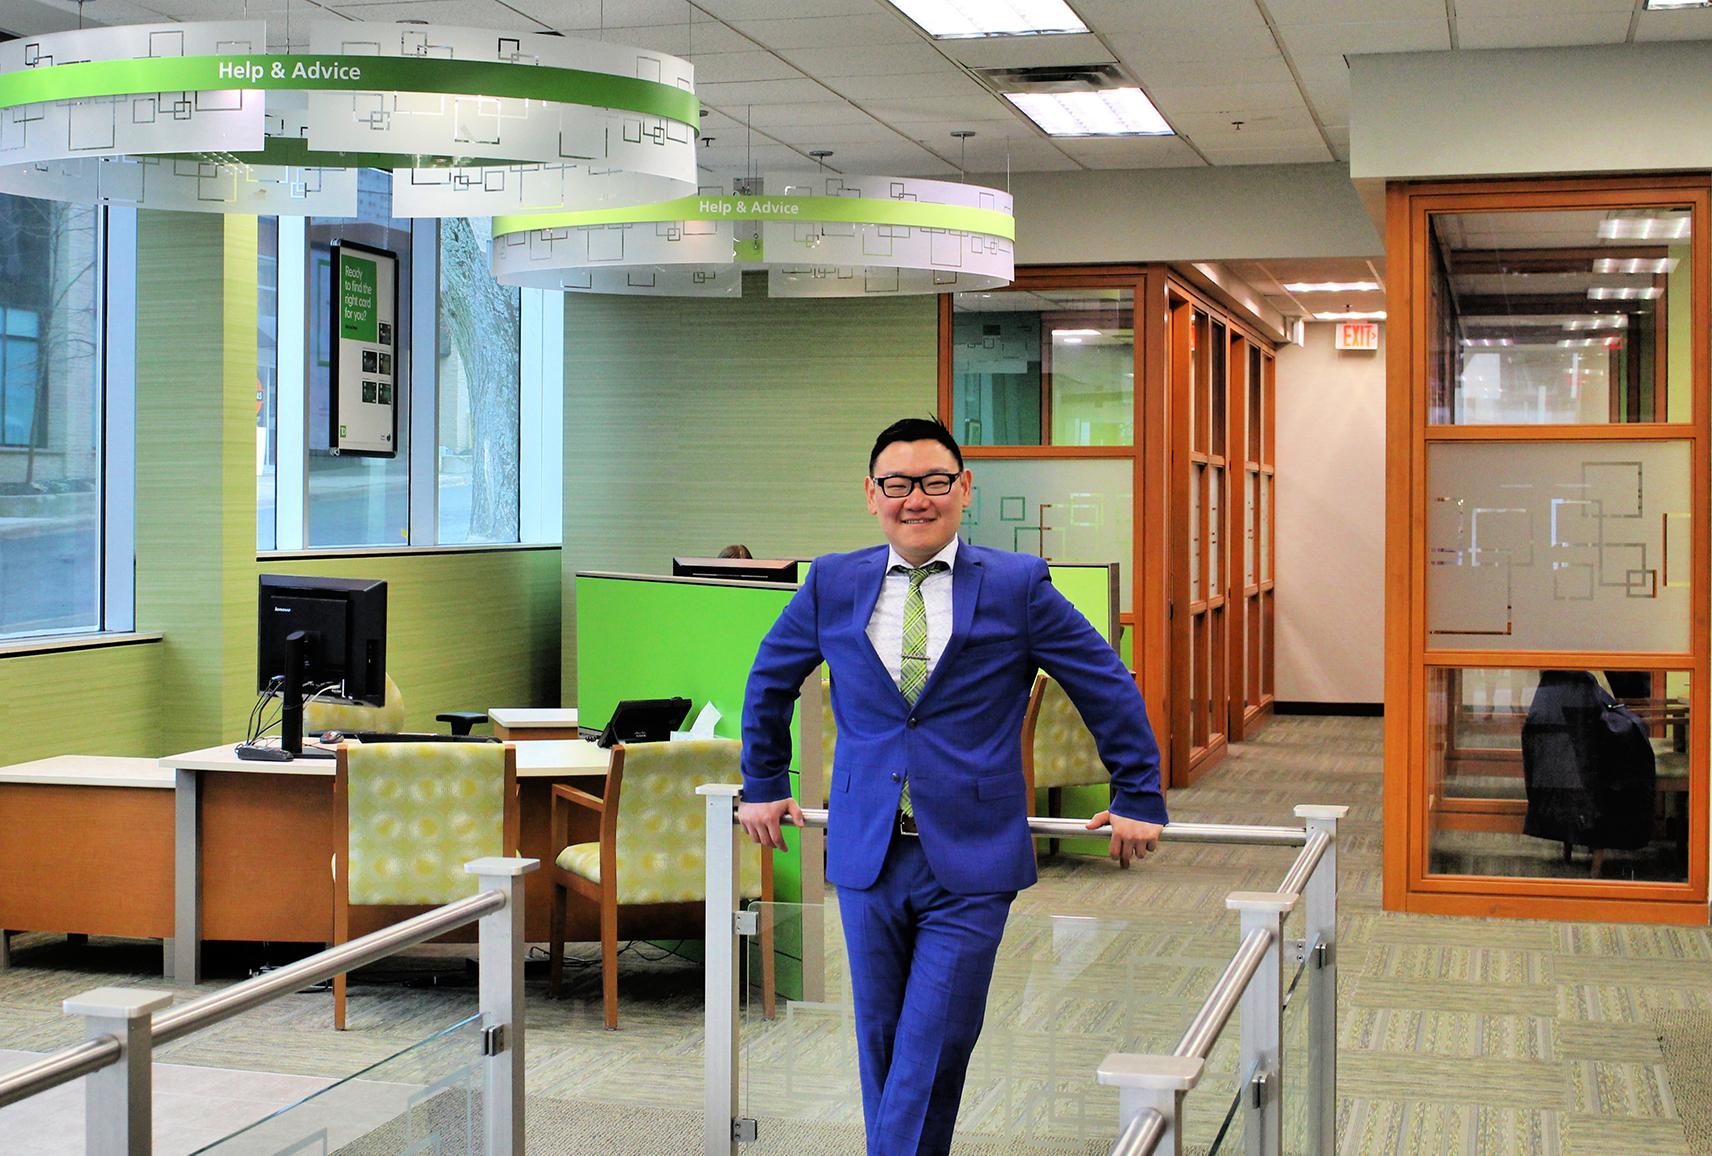 'It's a good place to be': Bank manager Yang Wang on why he loves calling Halifax home – and why you will, too